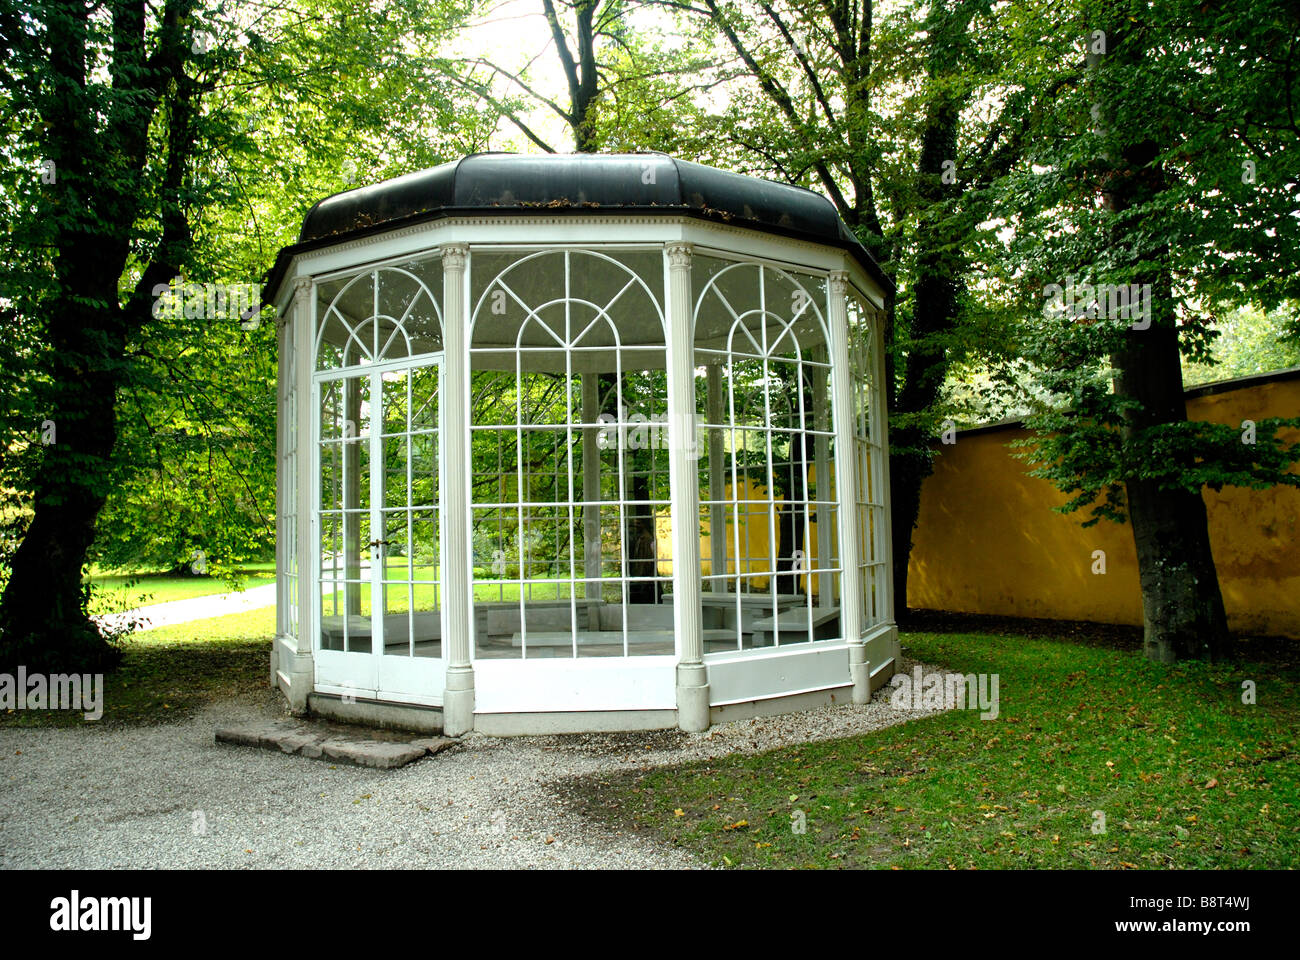 Summerhouse at Hellbrun Castle used in film the Sound Of Music for song  'You are 16 going on 17'